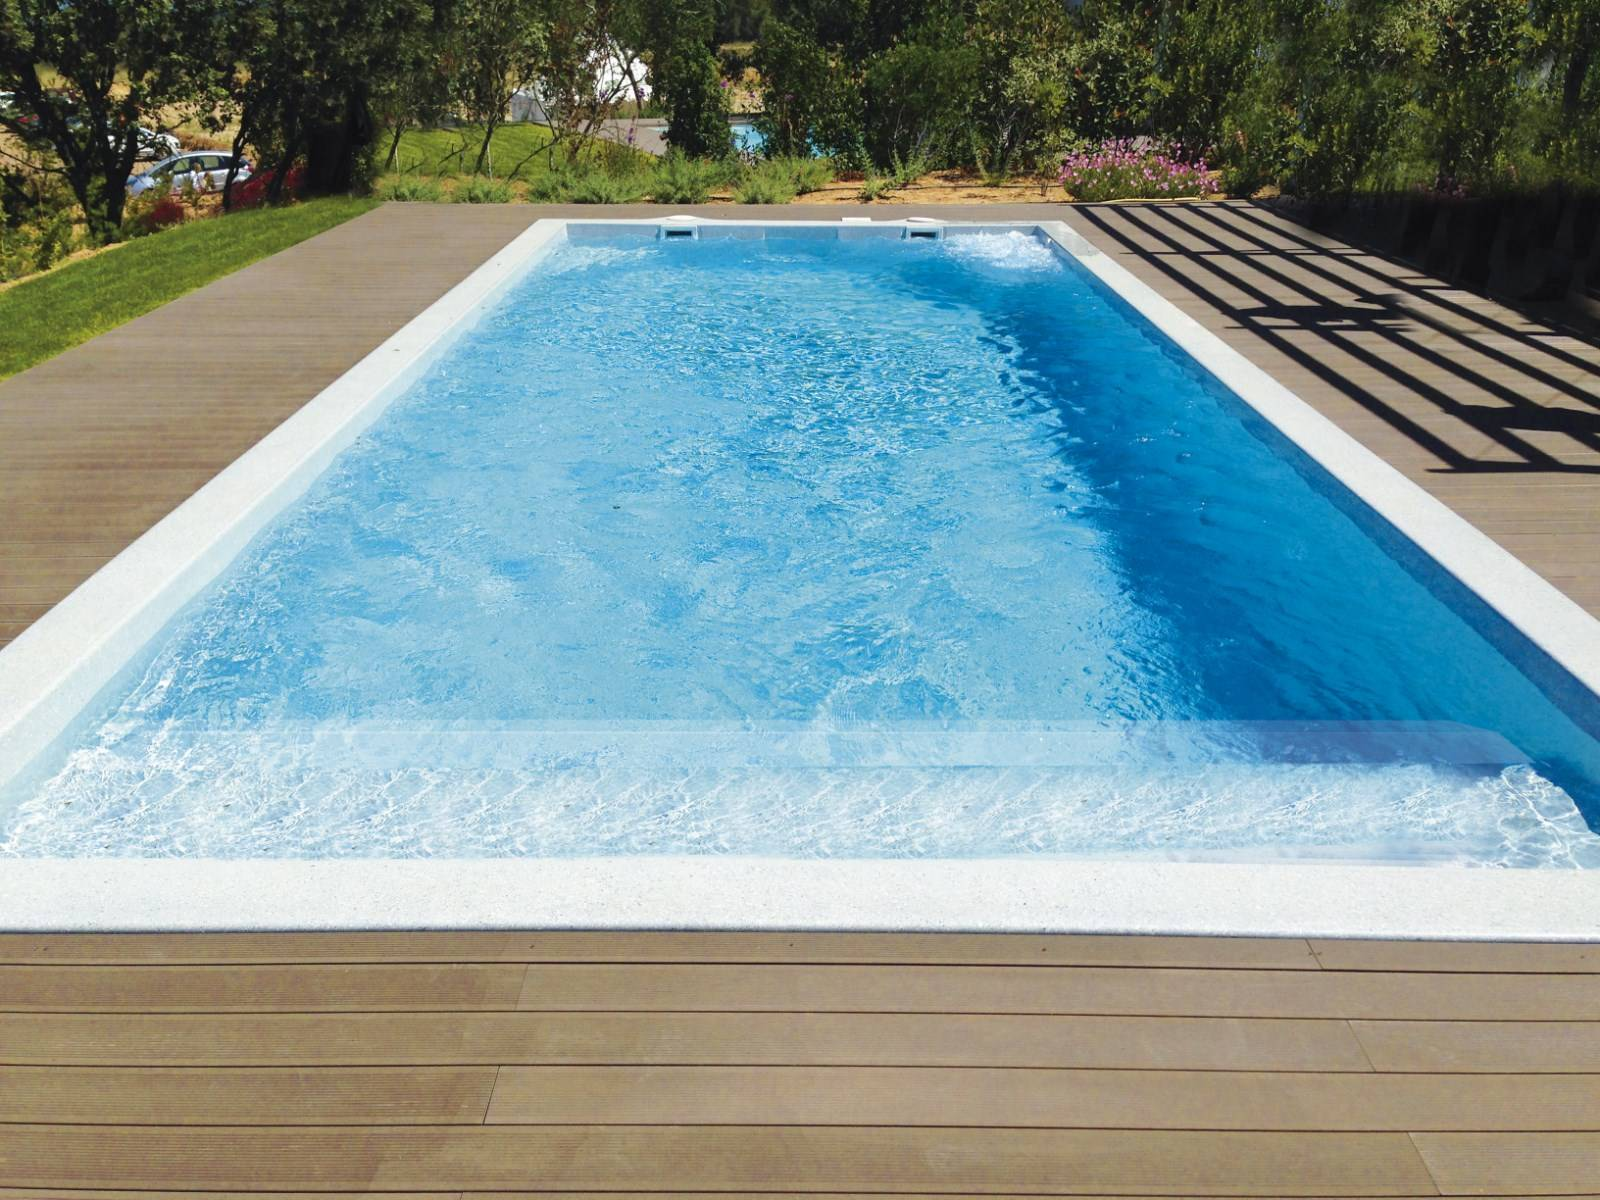 Piscine coque polyester freedom mod le riviera for Vente piscine coque